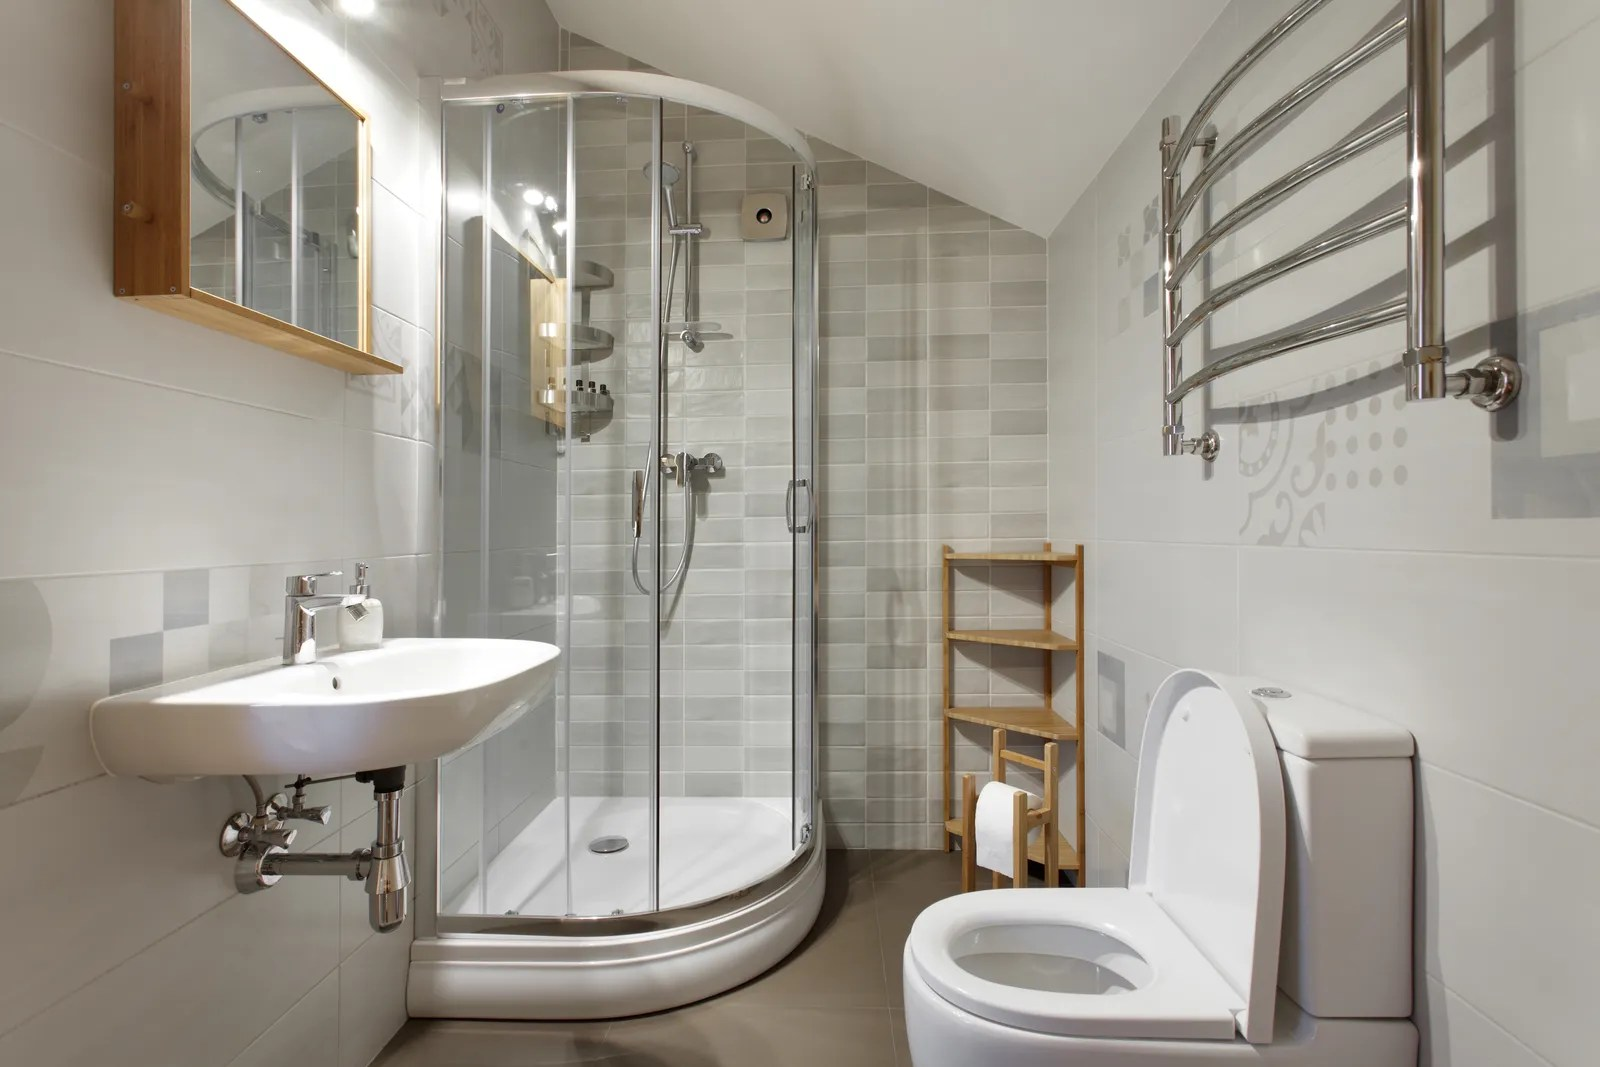 33 Small Bathroom Ideas To Make Your Bathroom Feel Bigger Architectural Digest